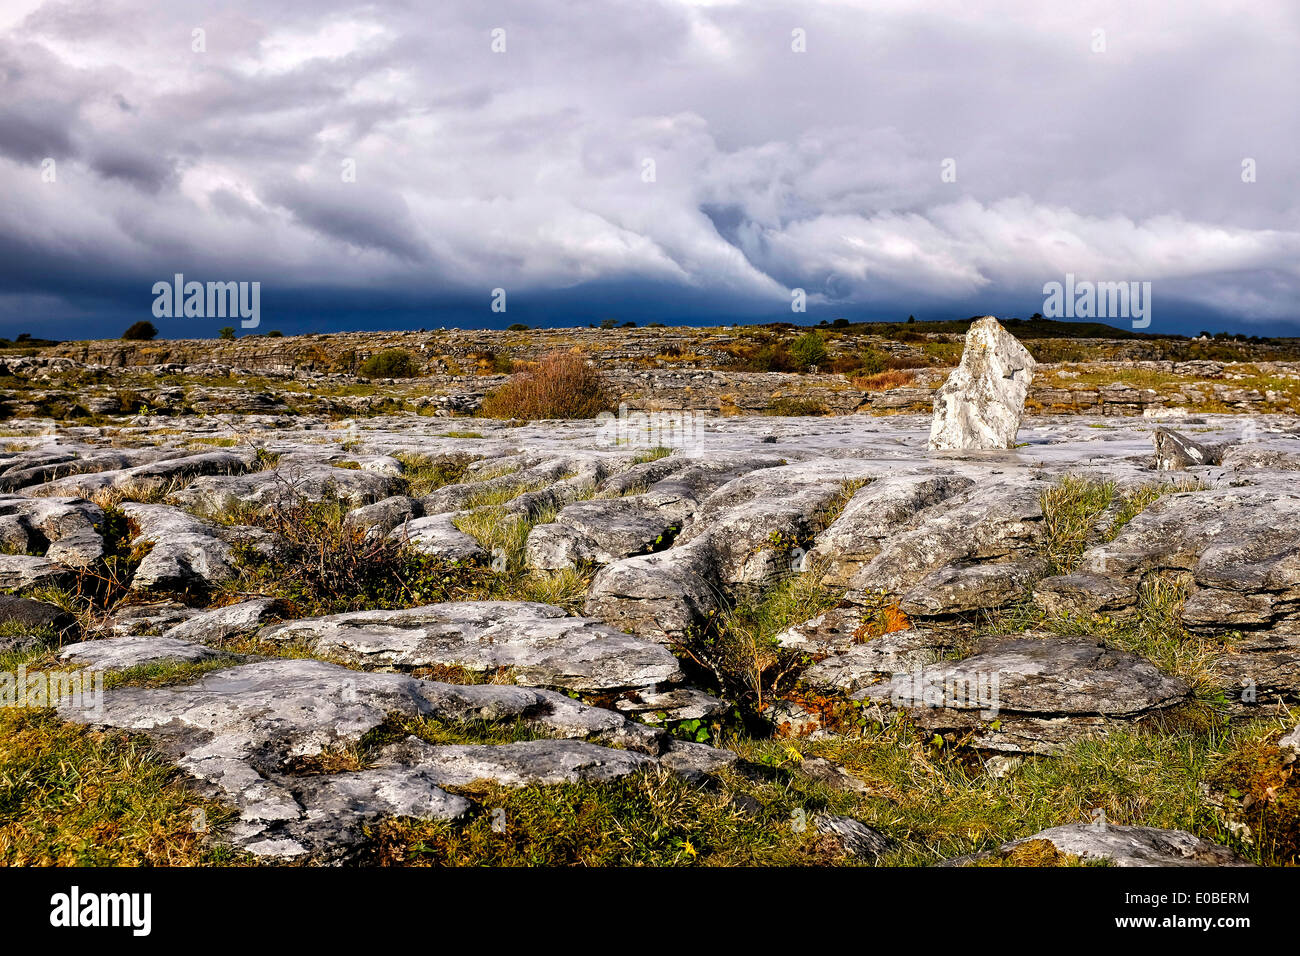 The karst hills of The Burren, County Clare, Ireland - Stock Image